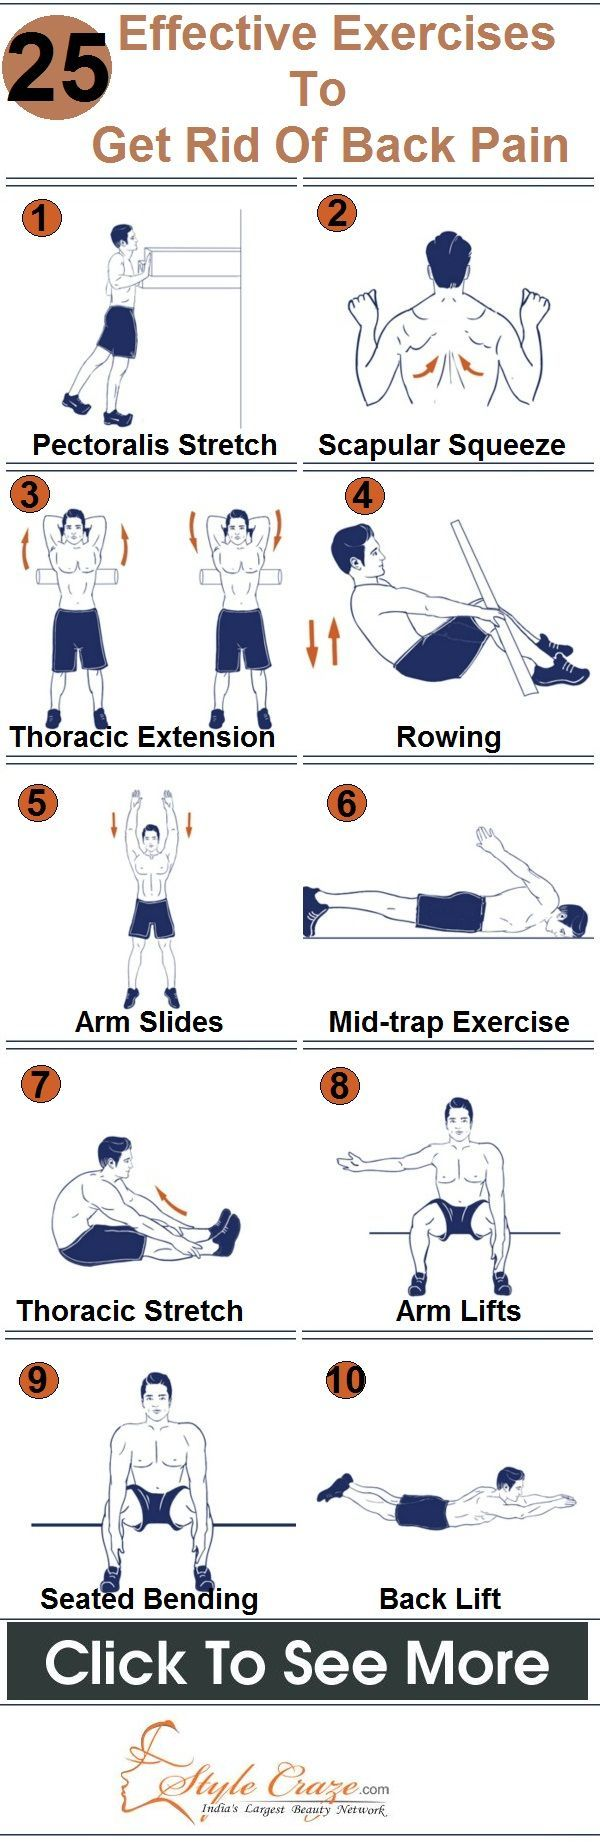 Best Exercises To Get Rid Of Back Pain - Our Top 25...GOOD FOR US